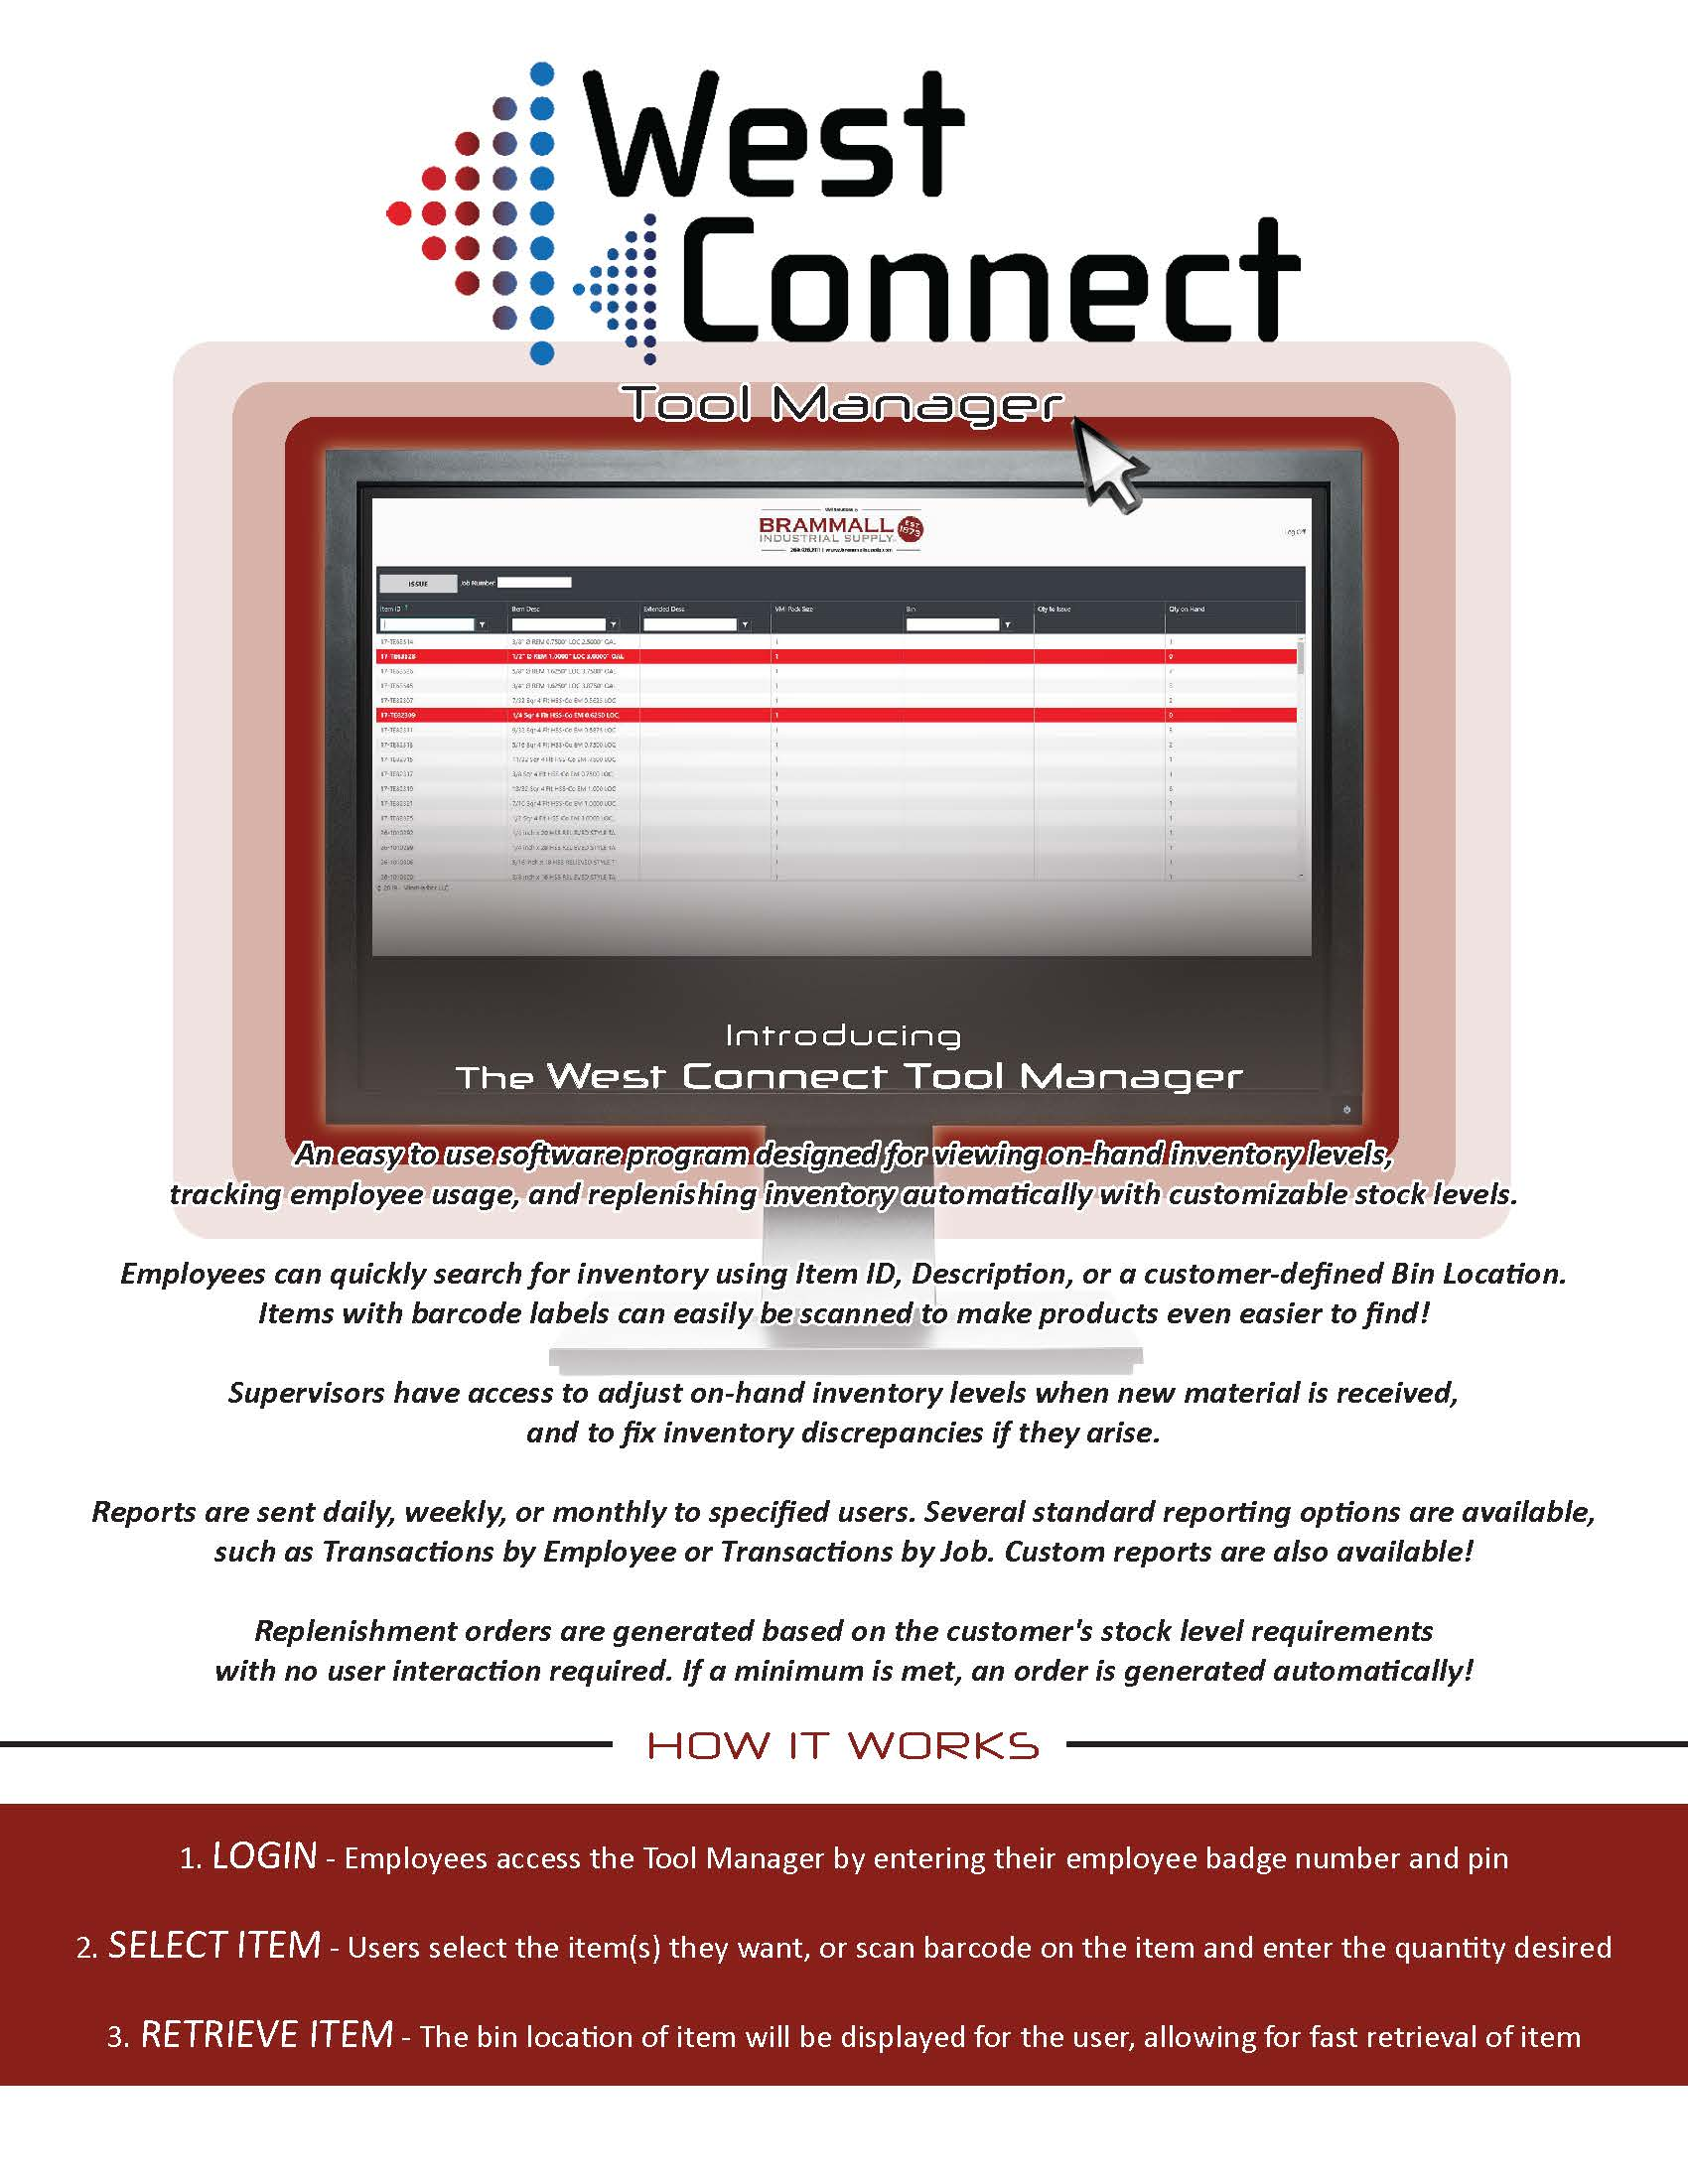 West Connect Tool Manager